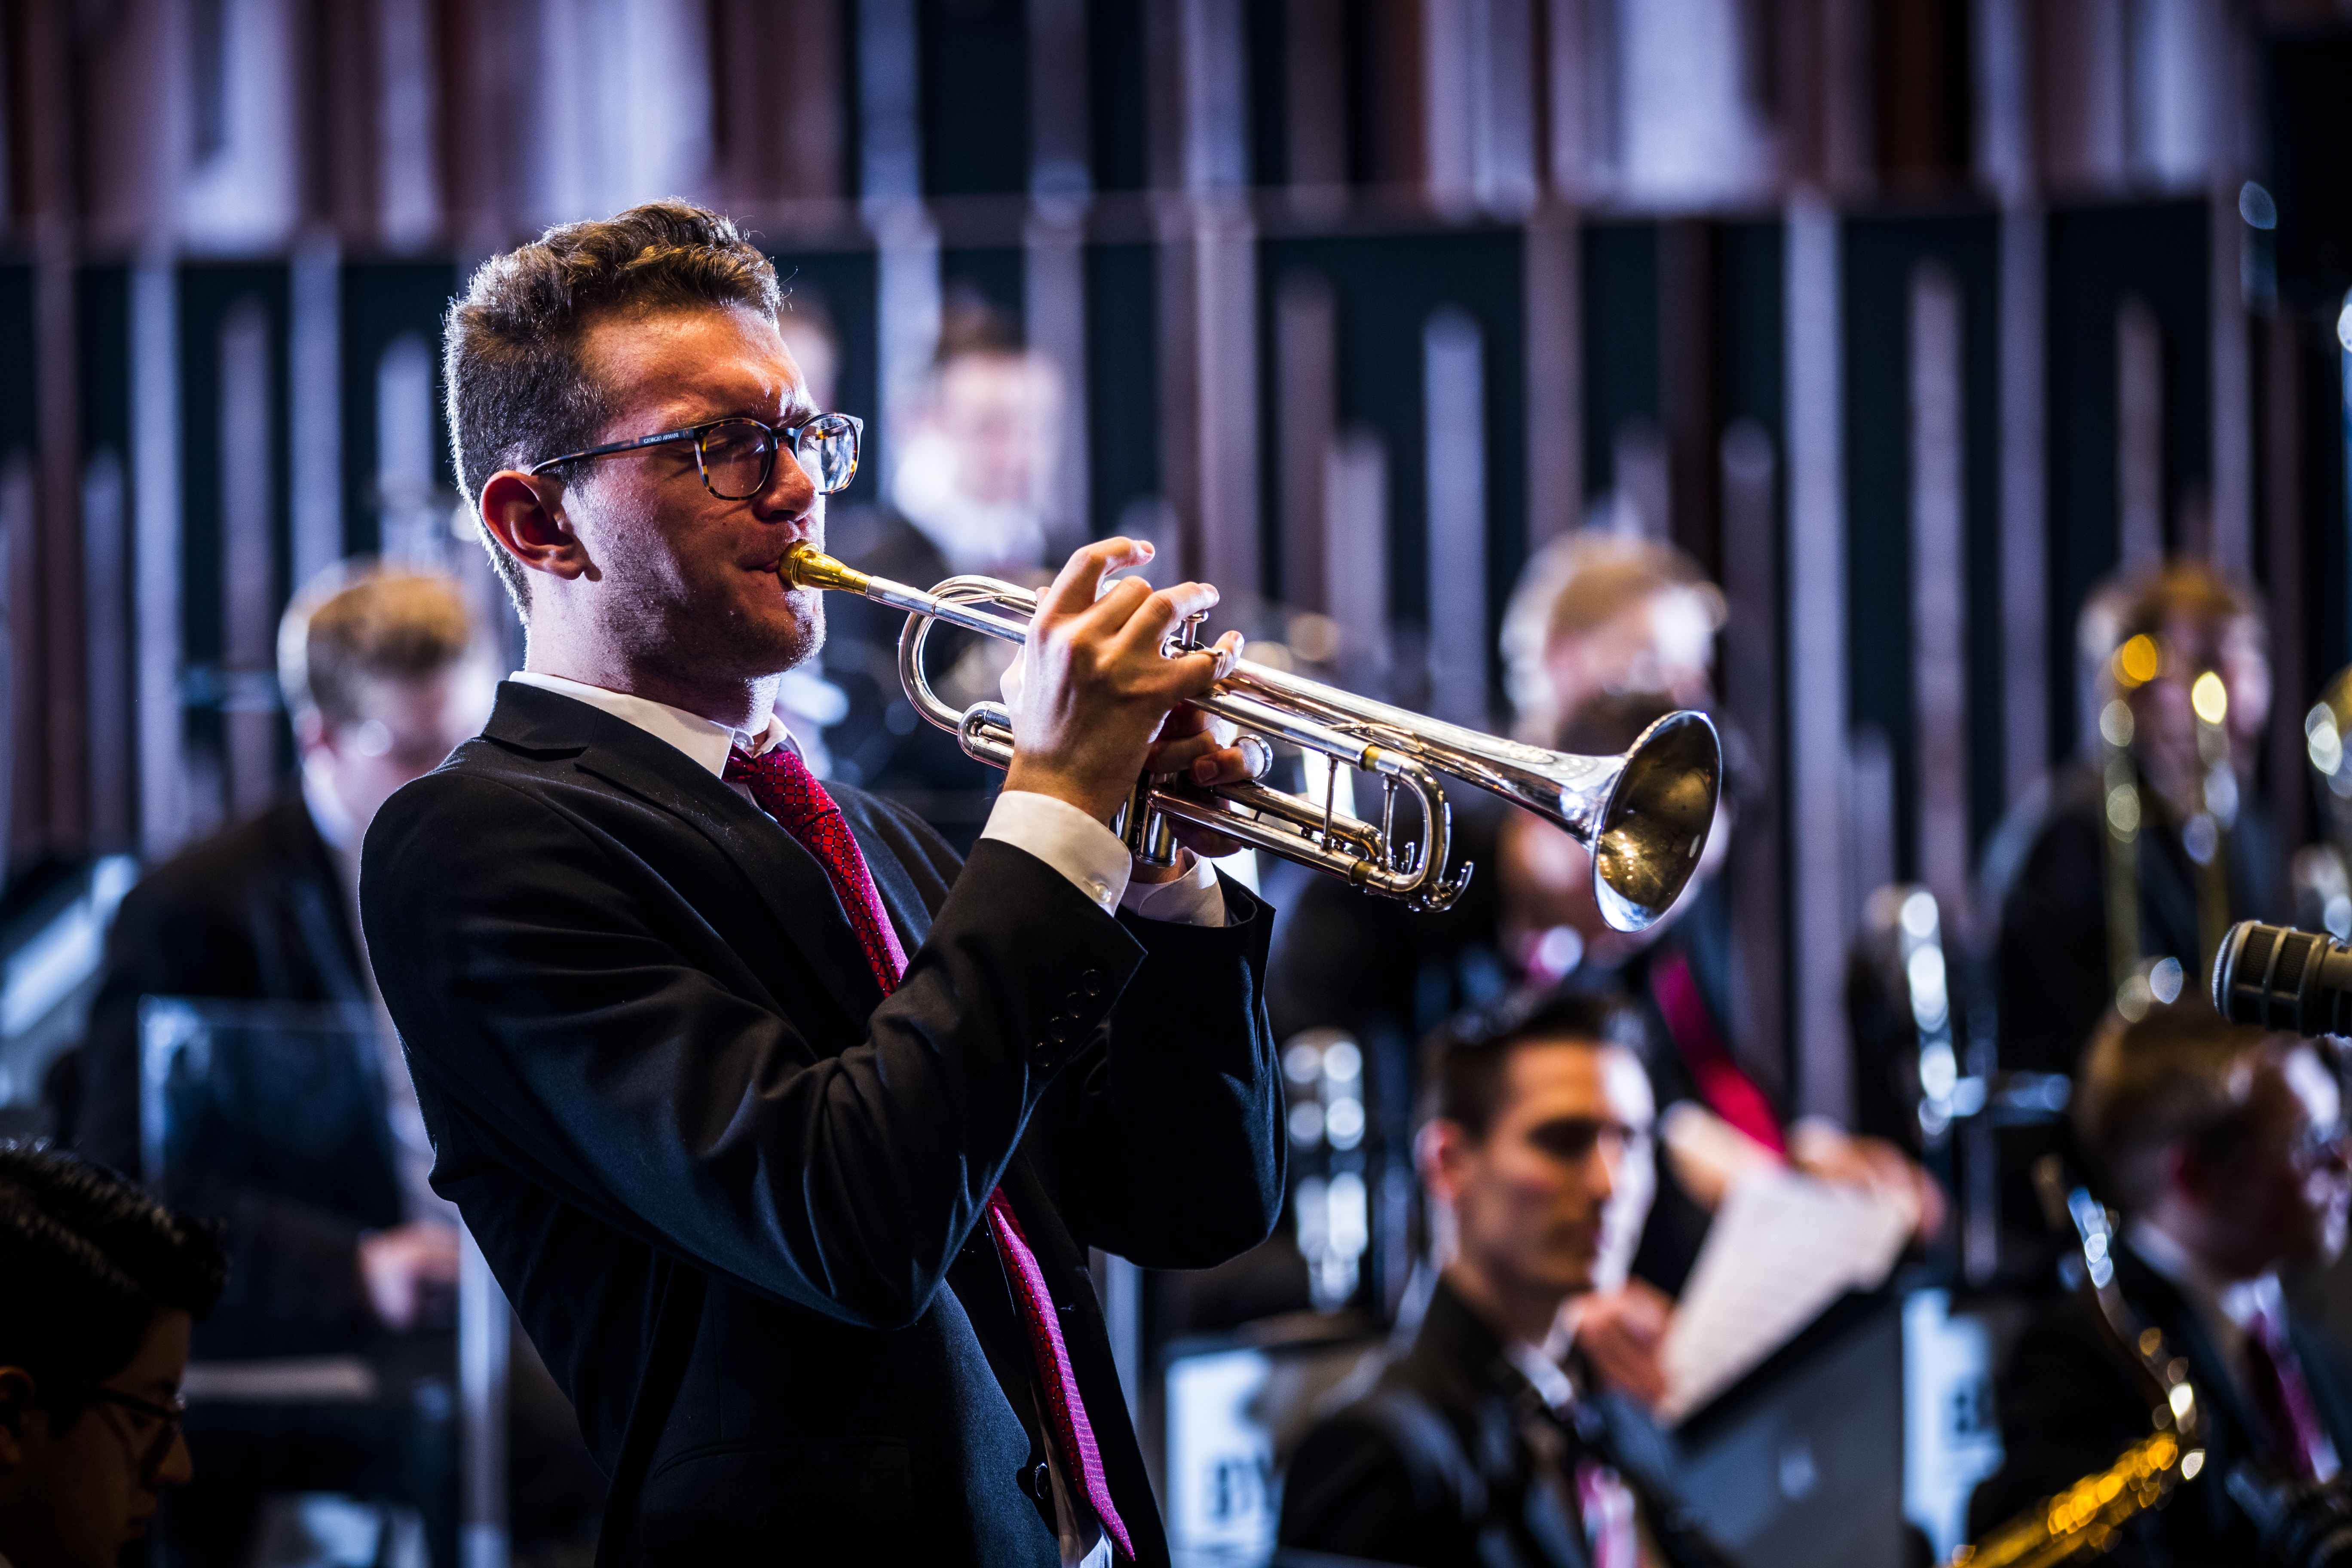 Joseph Sandholtz performing a solo on the trumpet